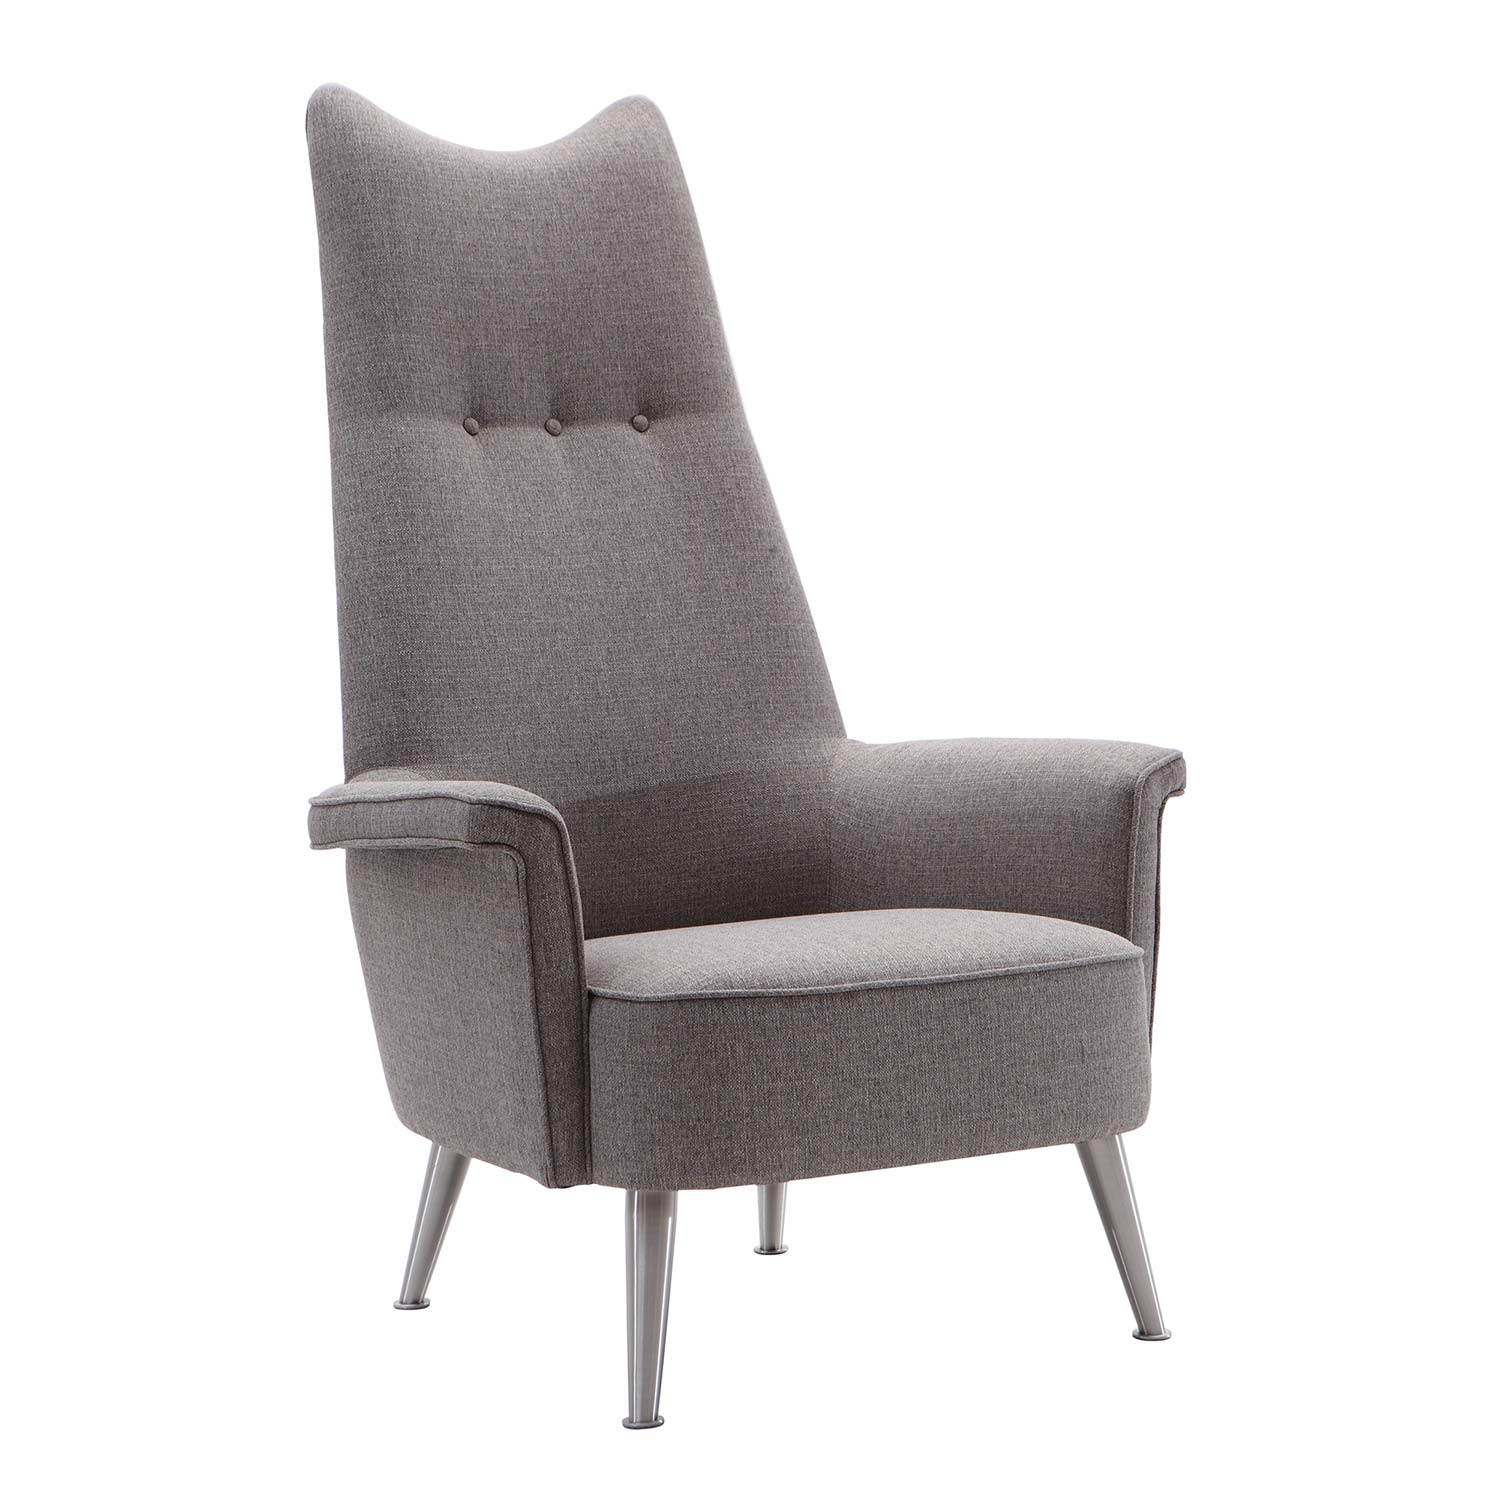 Armen Living Danka Chair - Grey